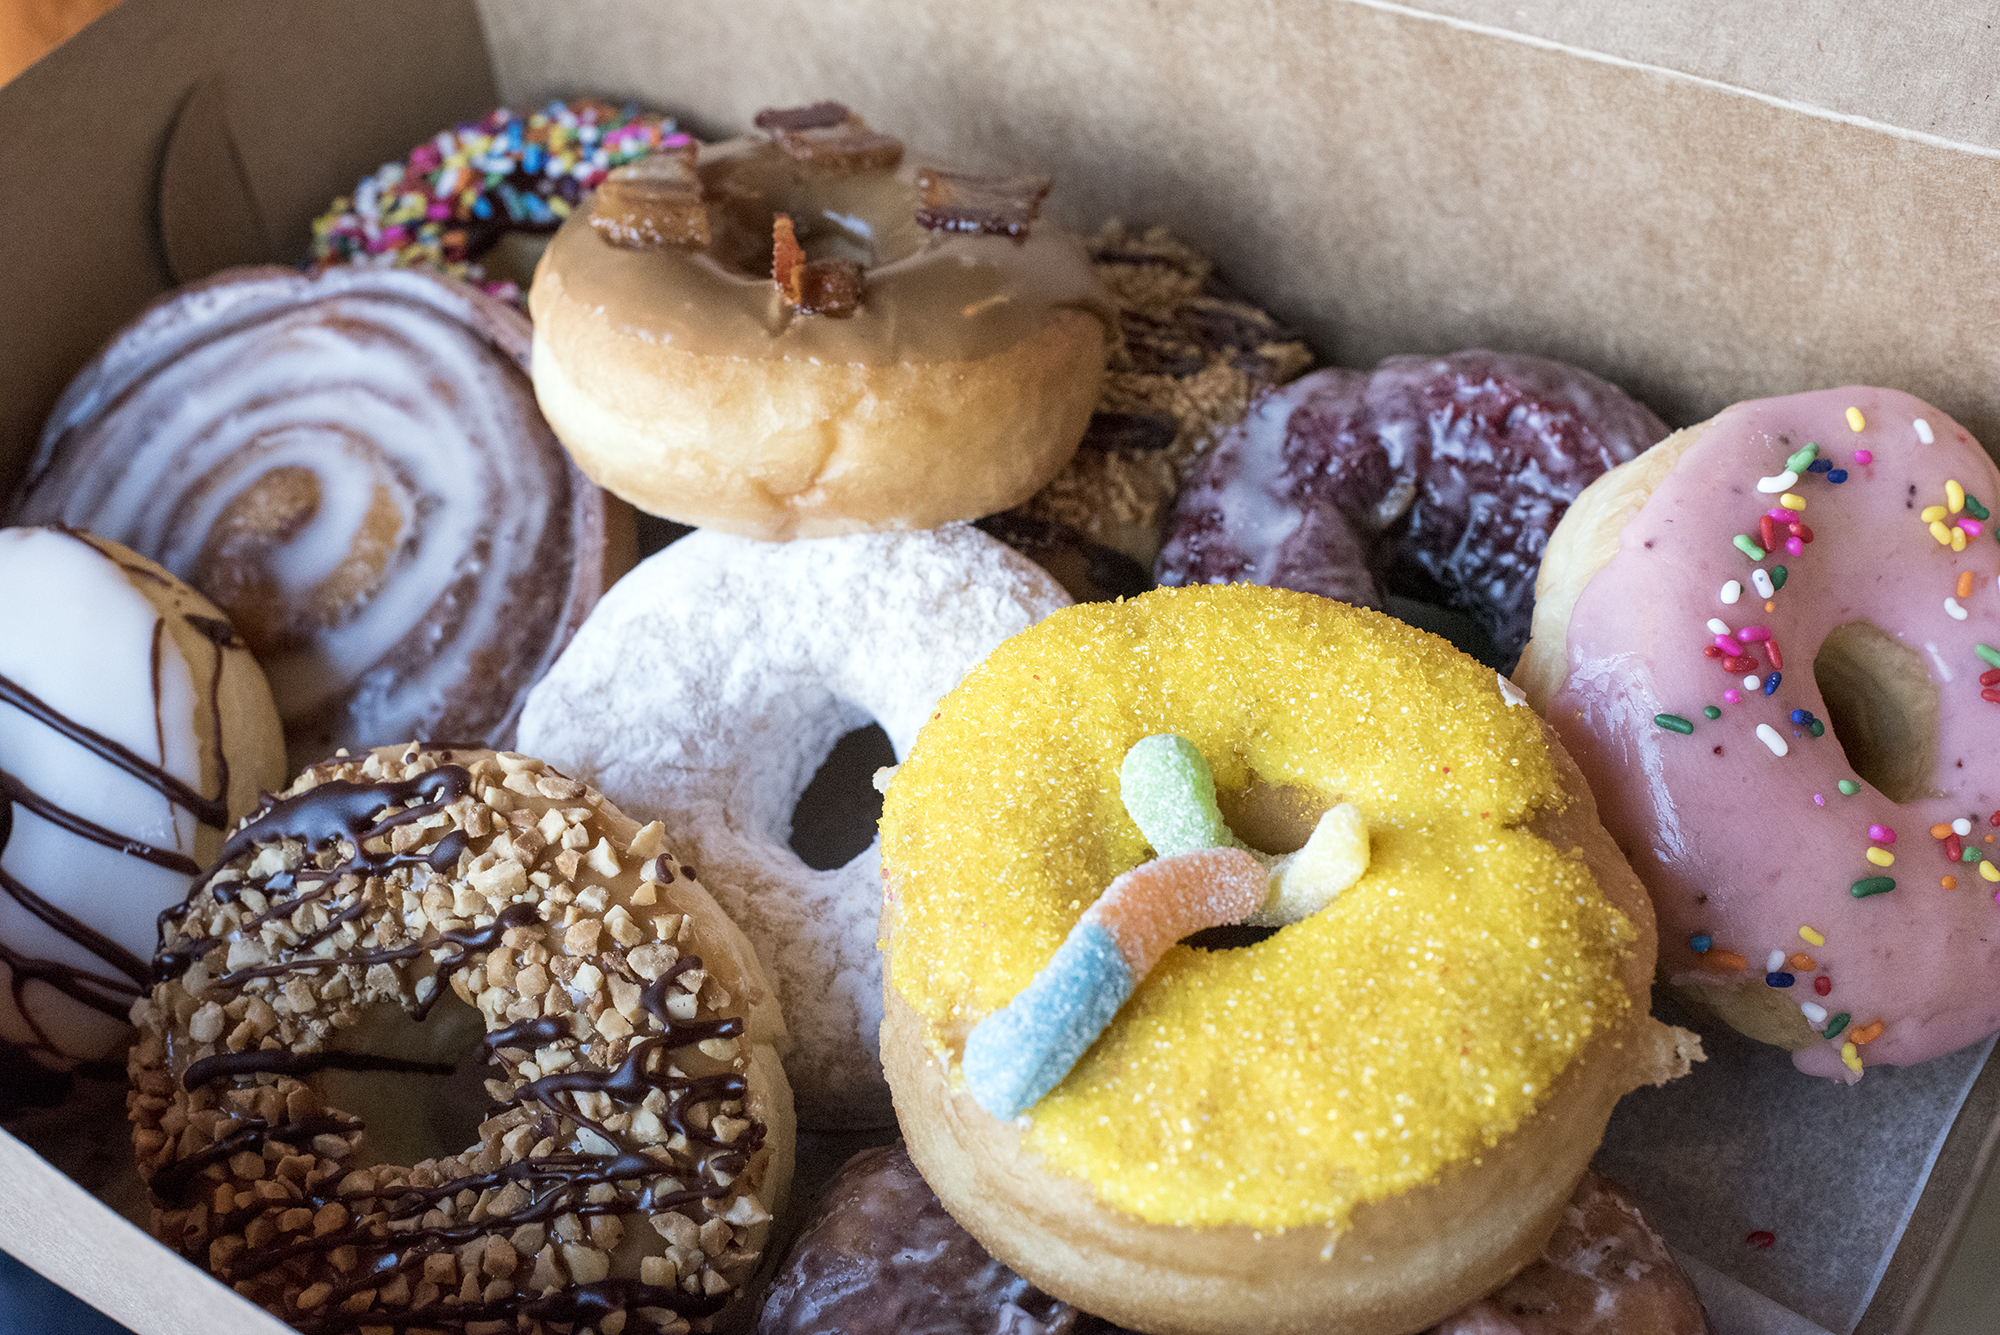 doughnuts-at-sugar-shack-photo-credit-jessica-van-dop-dejesus.jpg